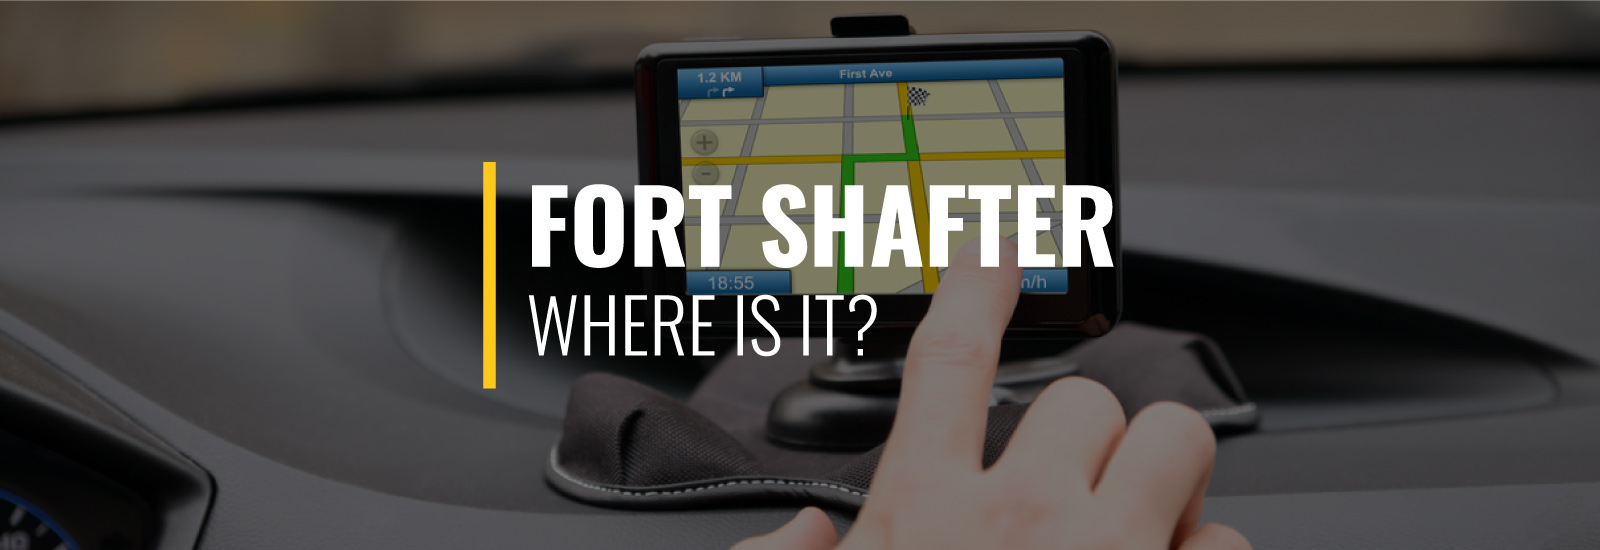 Where Is Fort Shafter, Hawaii?